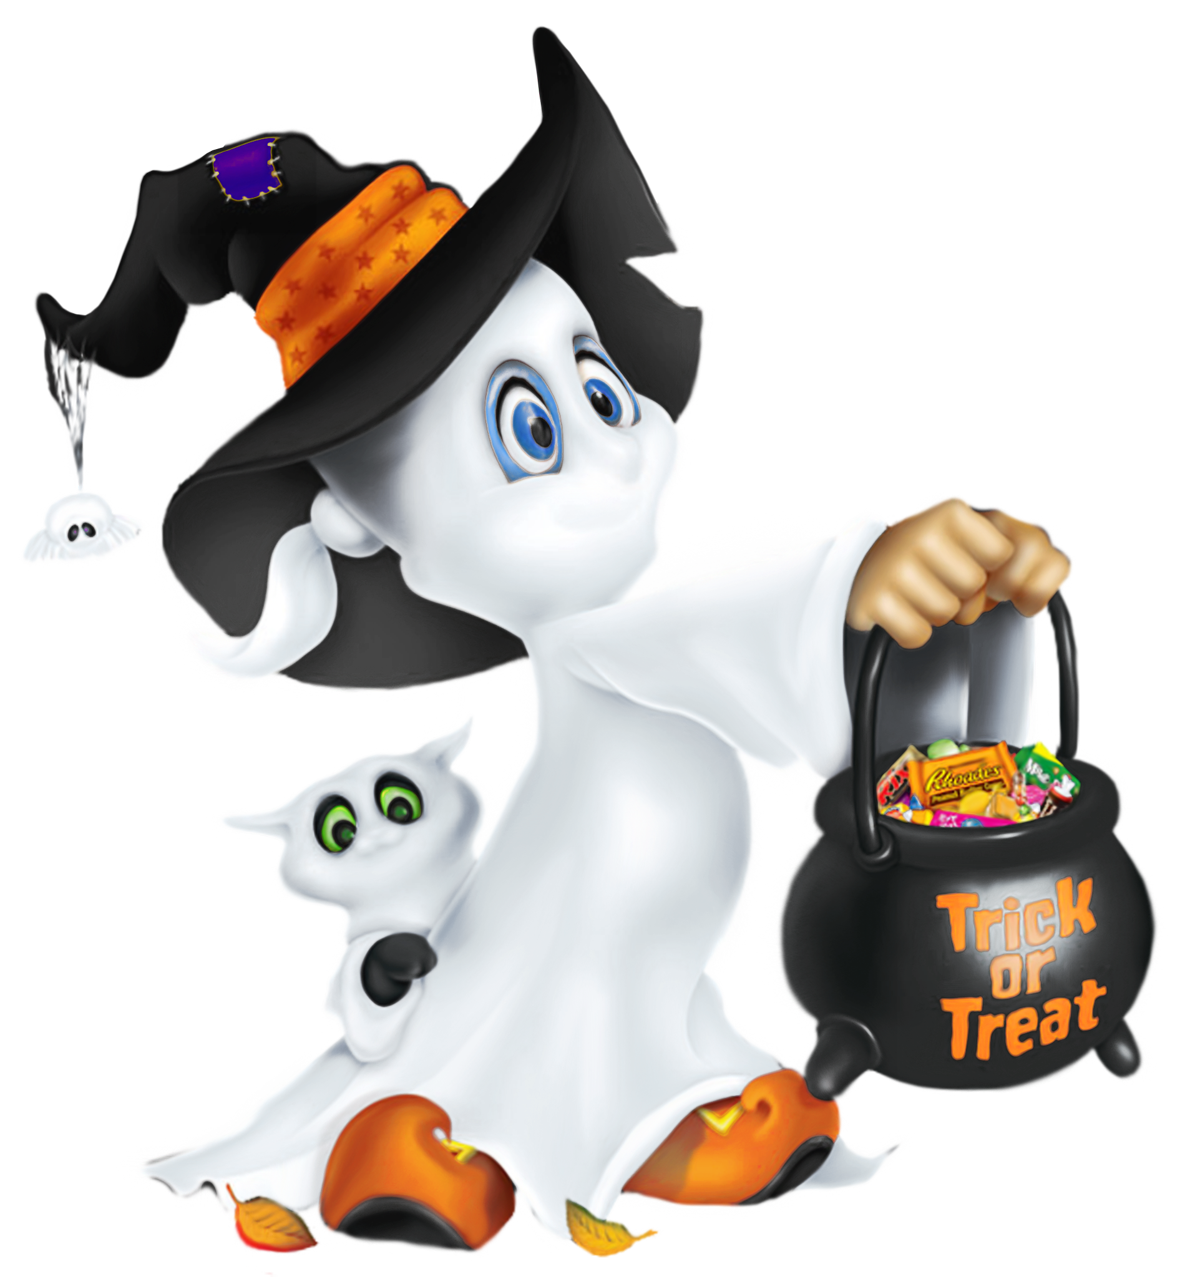 Cute halloween ghosts clipart clipart library library Cute Halloween Ghost Clipart | Gallery Yopriceville - High-Quality ... clipart library library